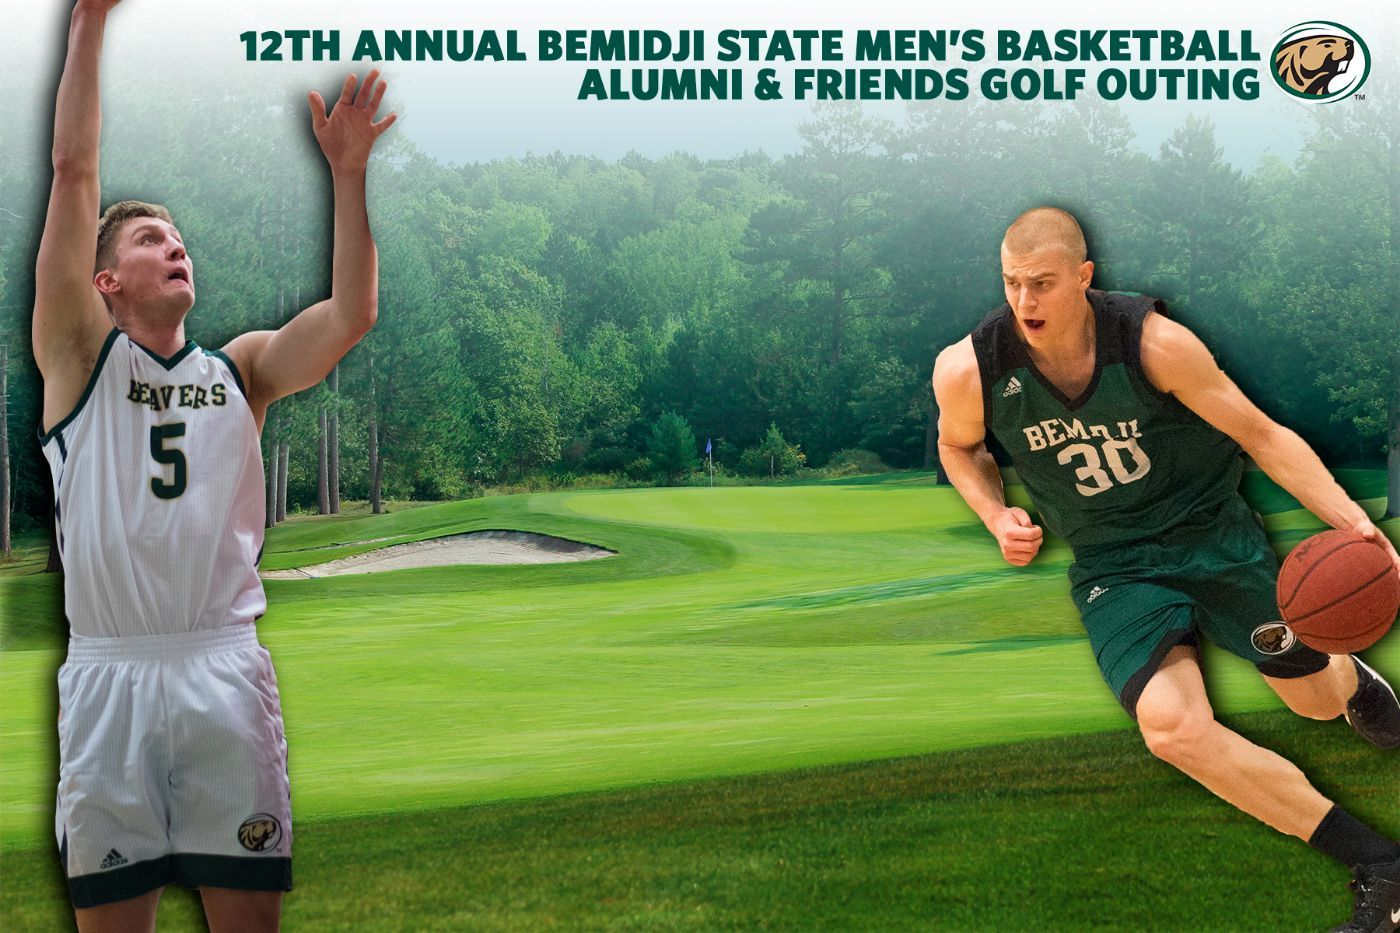 Beaver Men's Basketball to host 12th annual golf outing on August 3